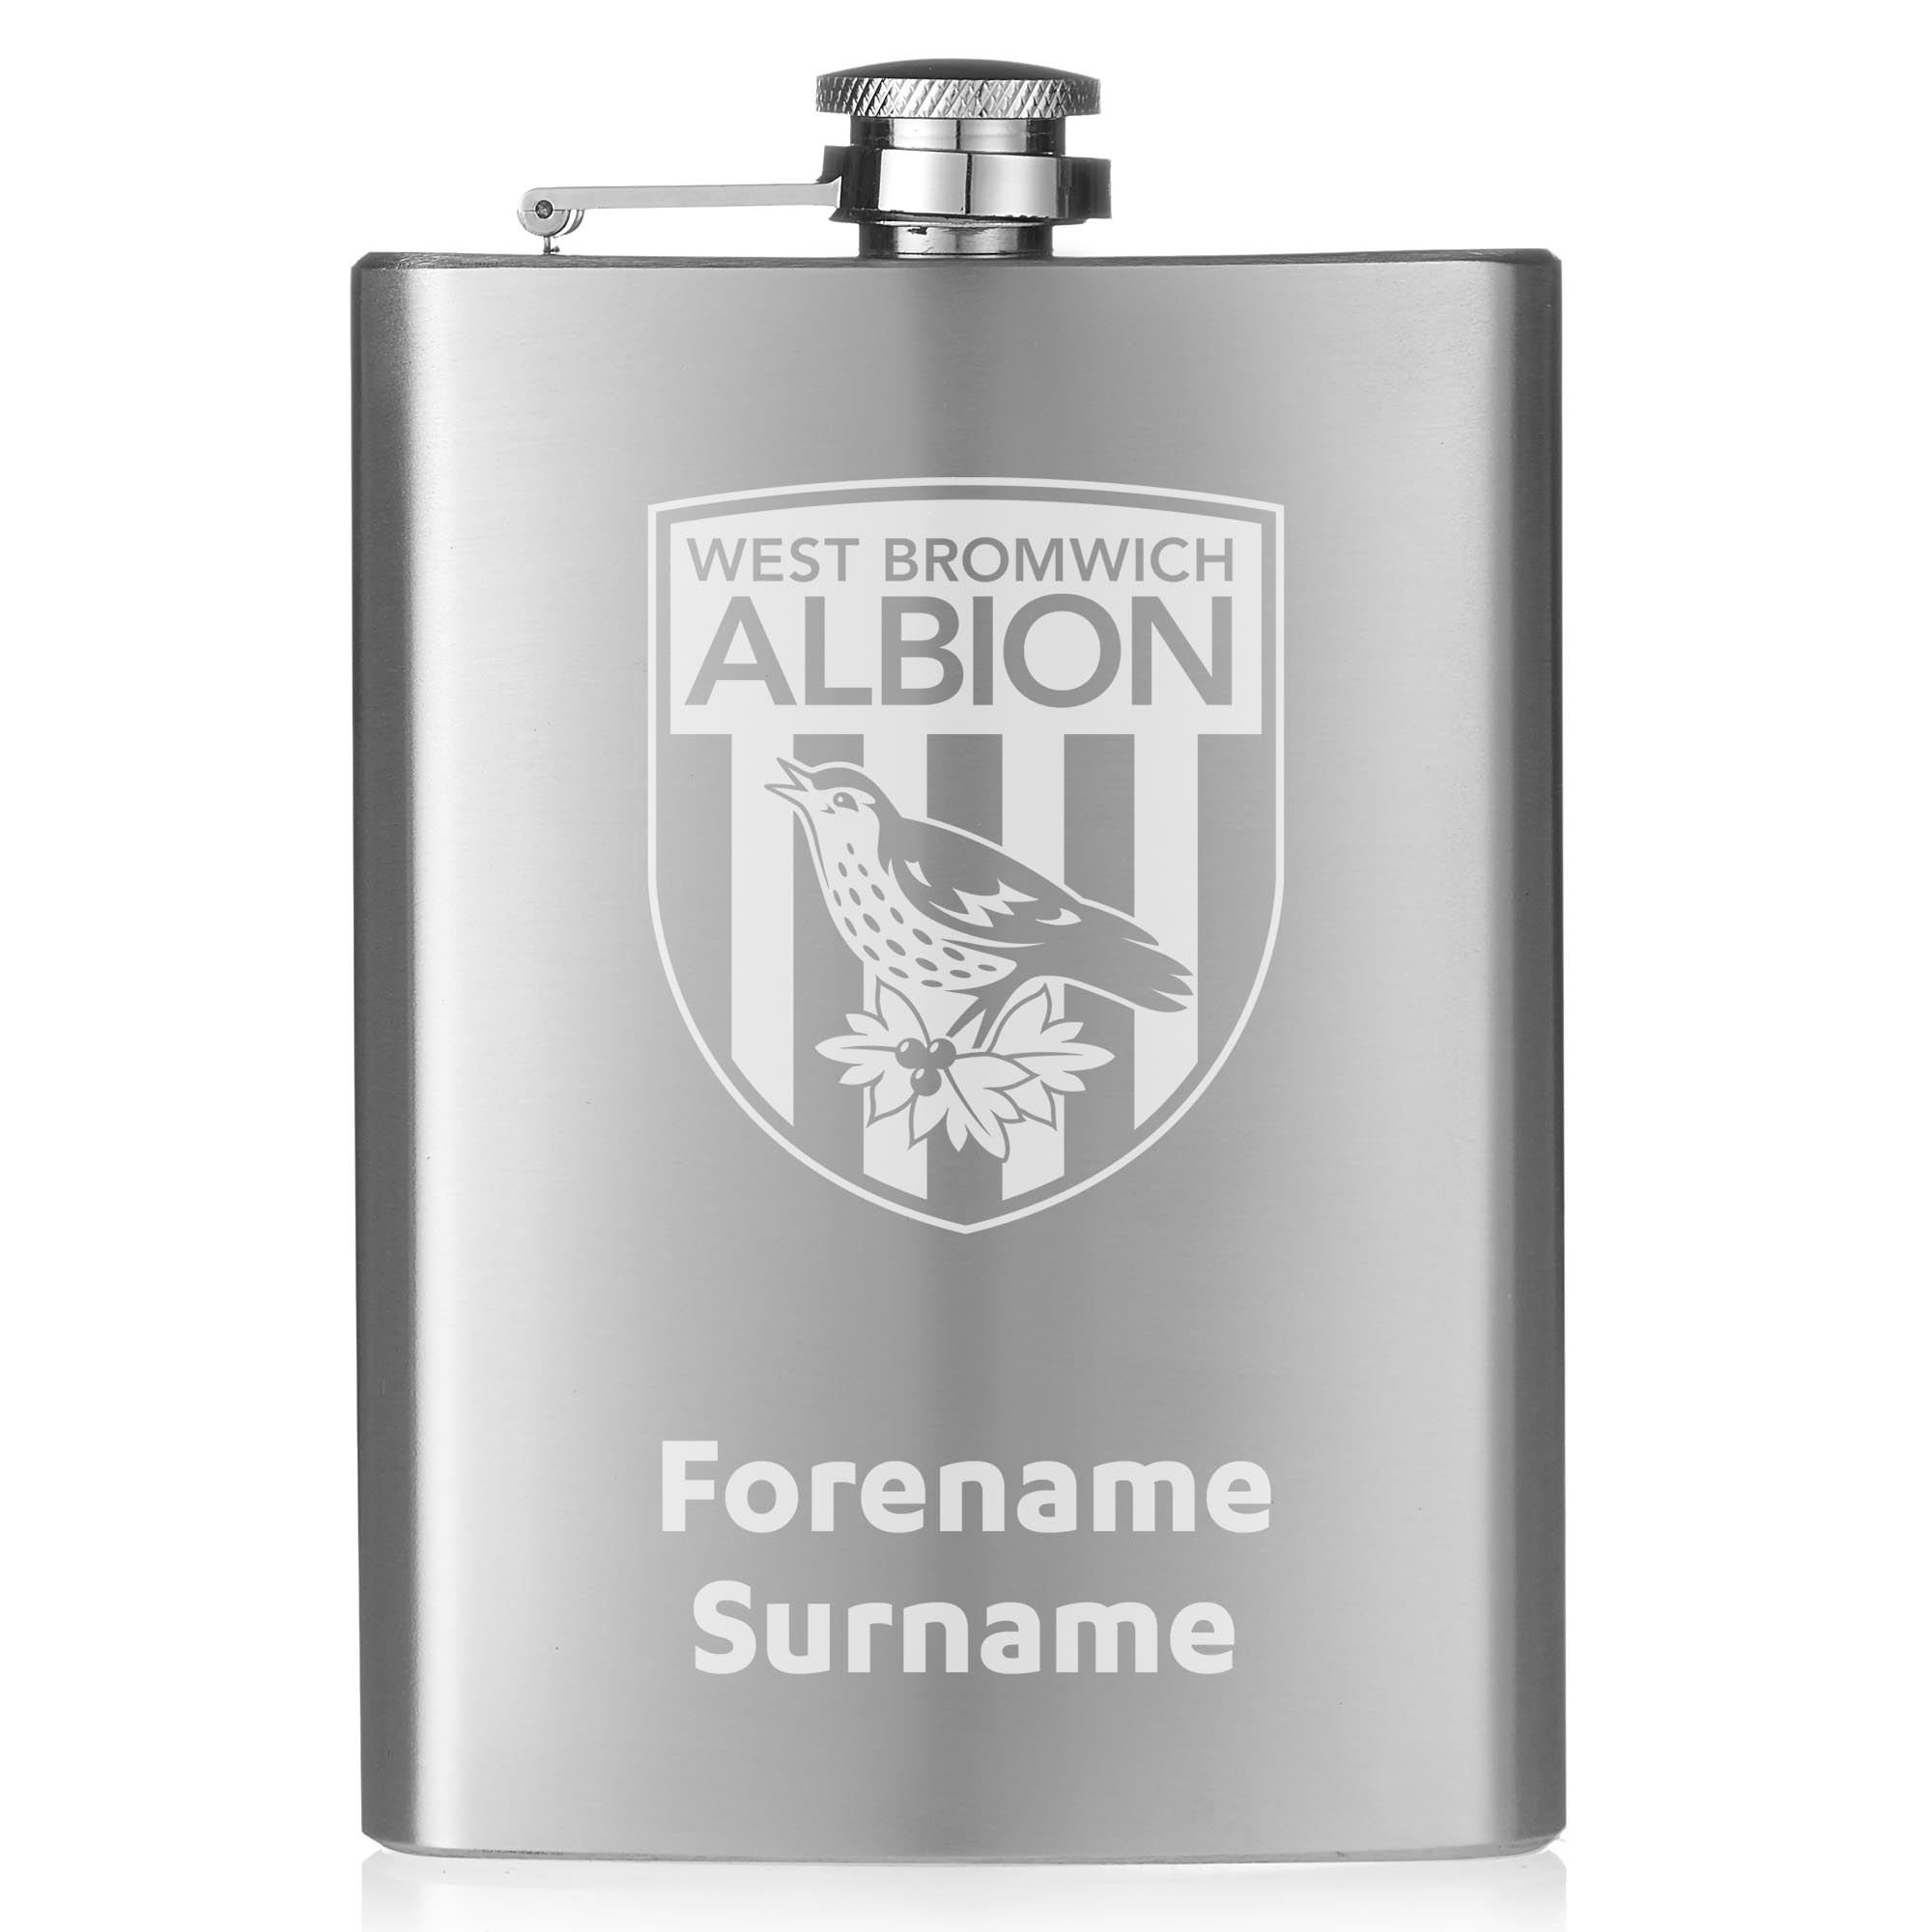 West Bromwich Albion FC Crest Hip Flask